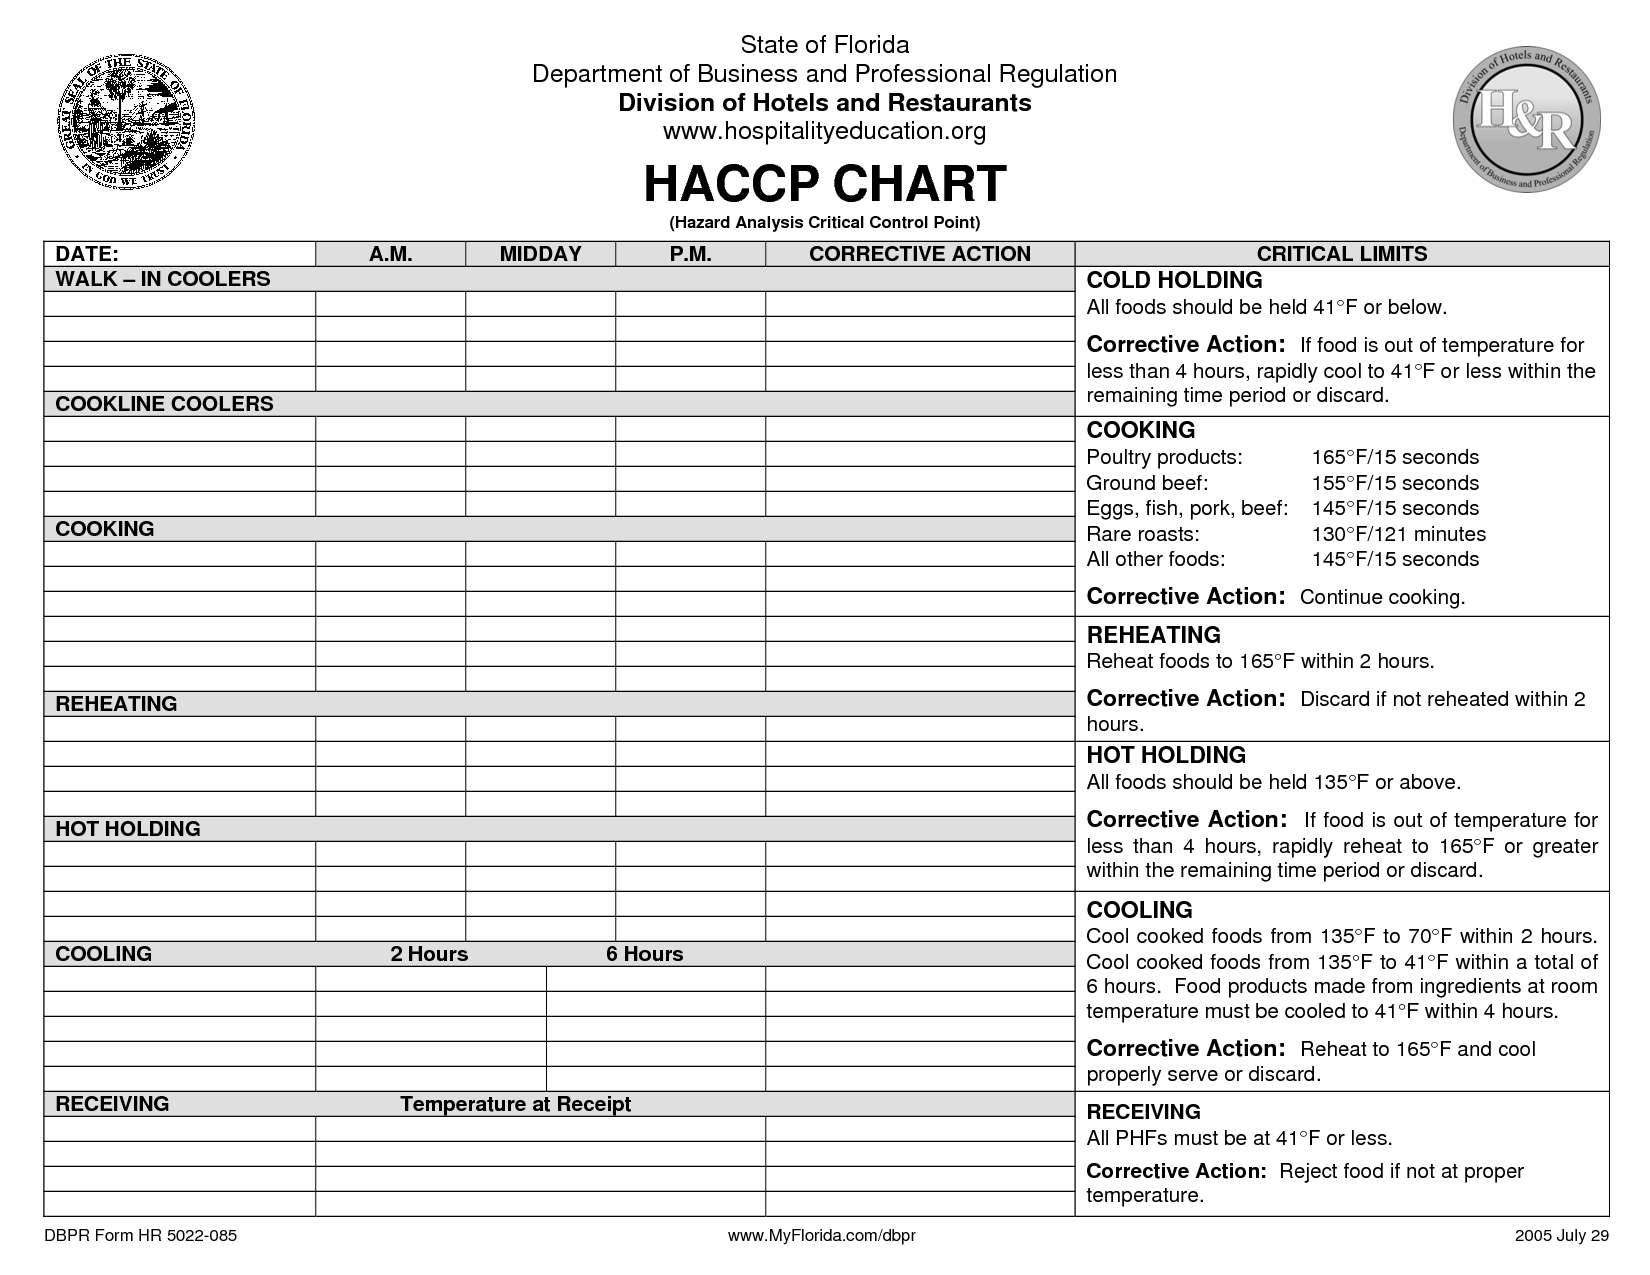 haccp template word - Dorit.mercatodos.co